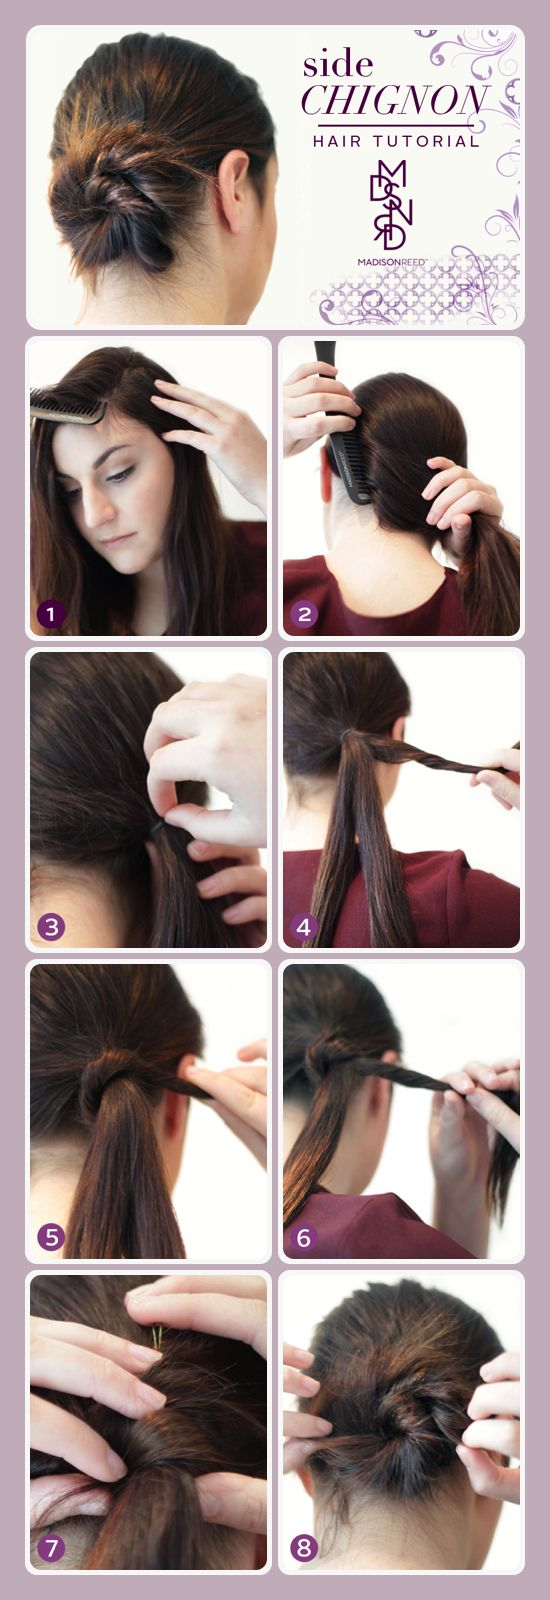 17 Best Ideas About Side Chignon On Pinterest Chignon Tutorial Bridal Chignon And Curly Updo